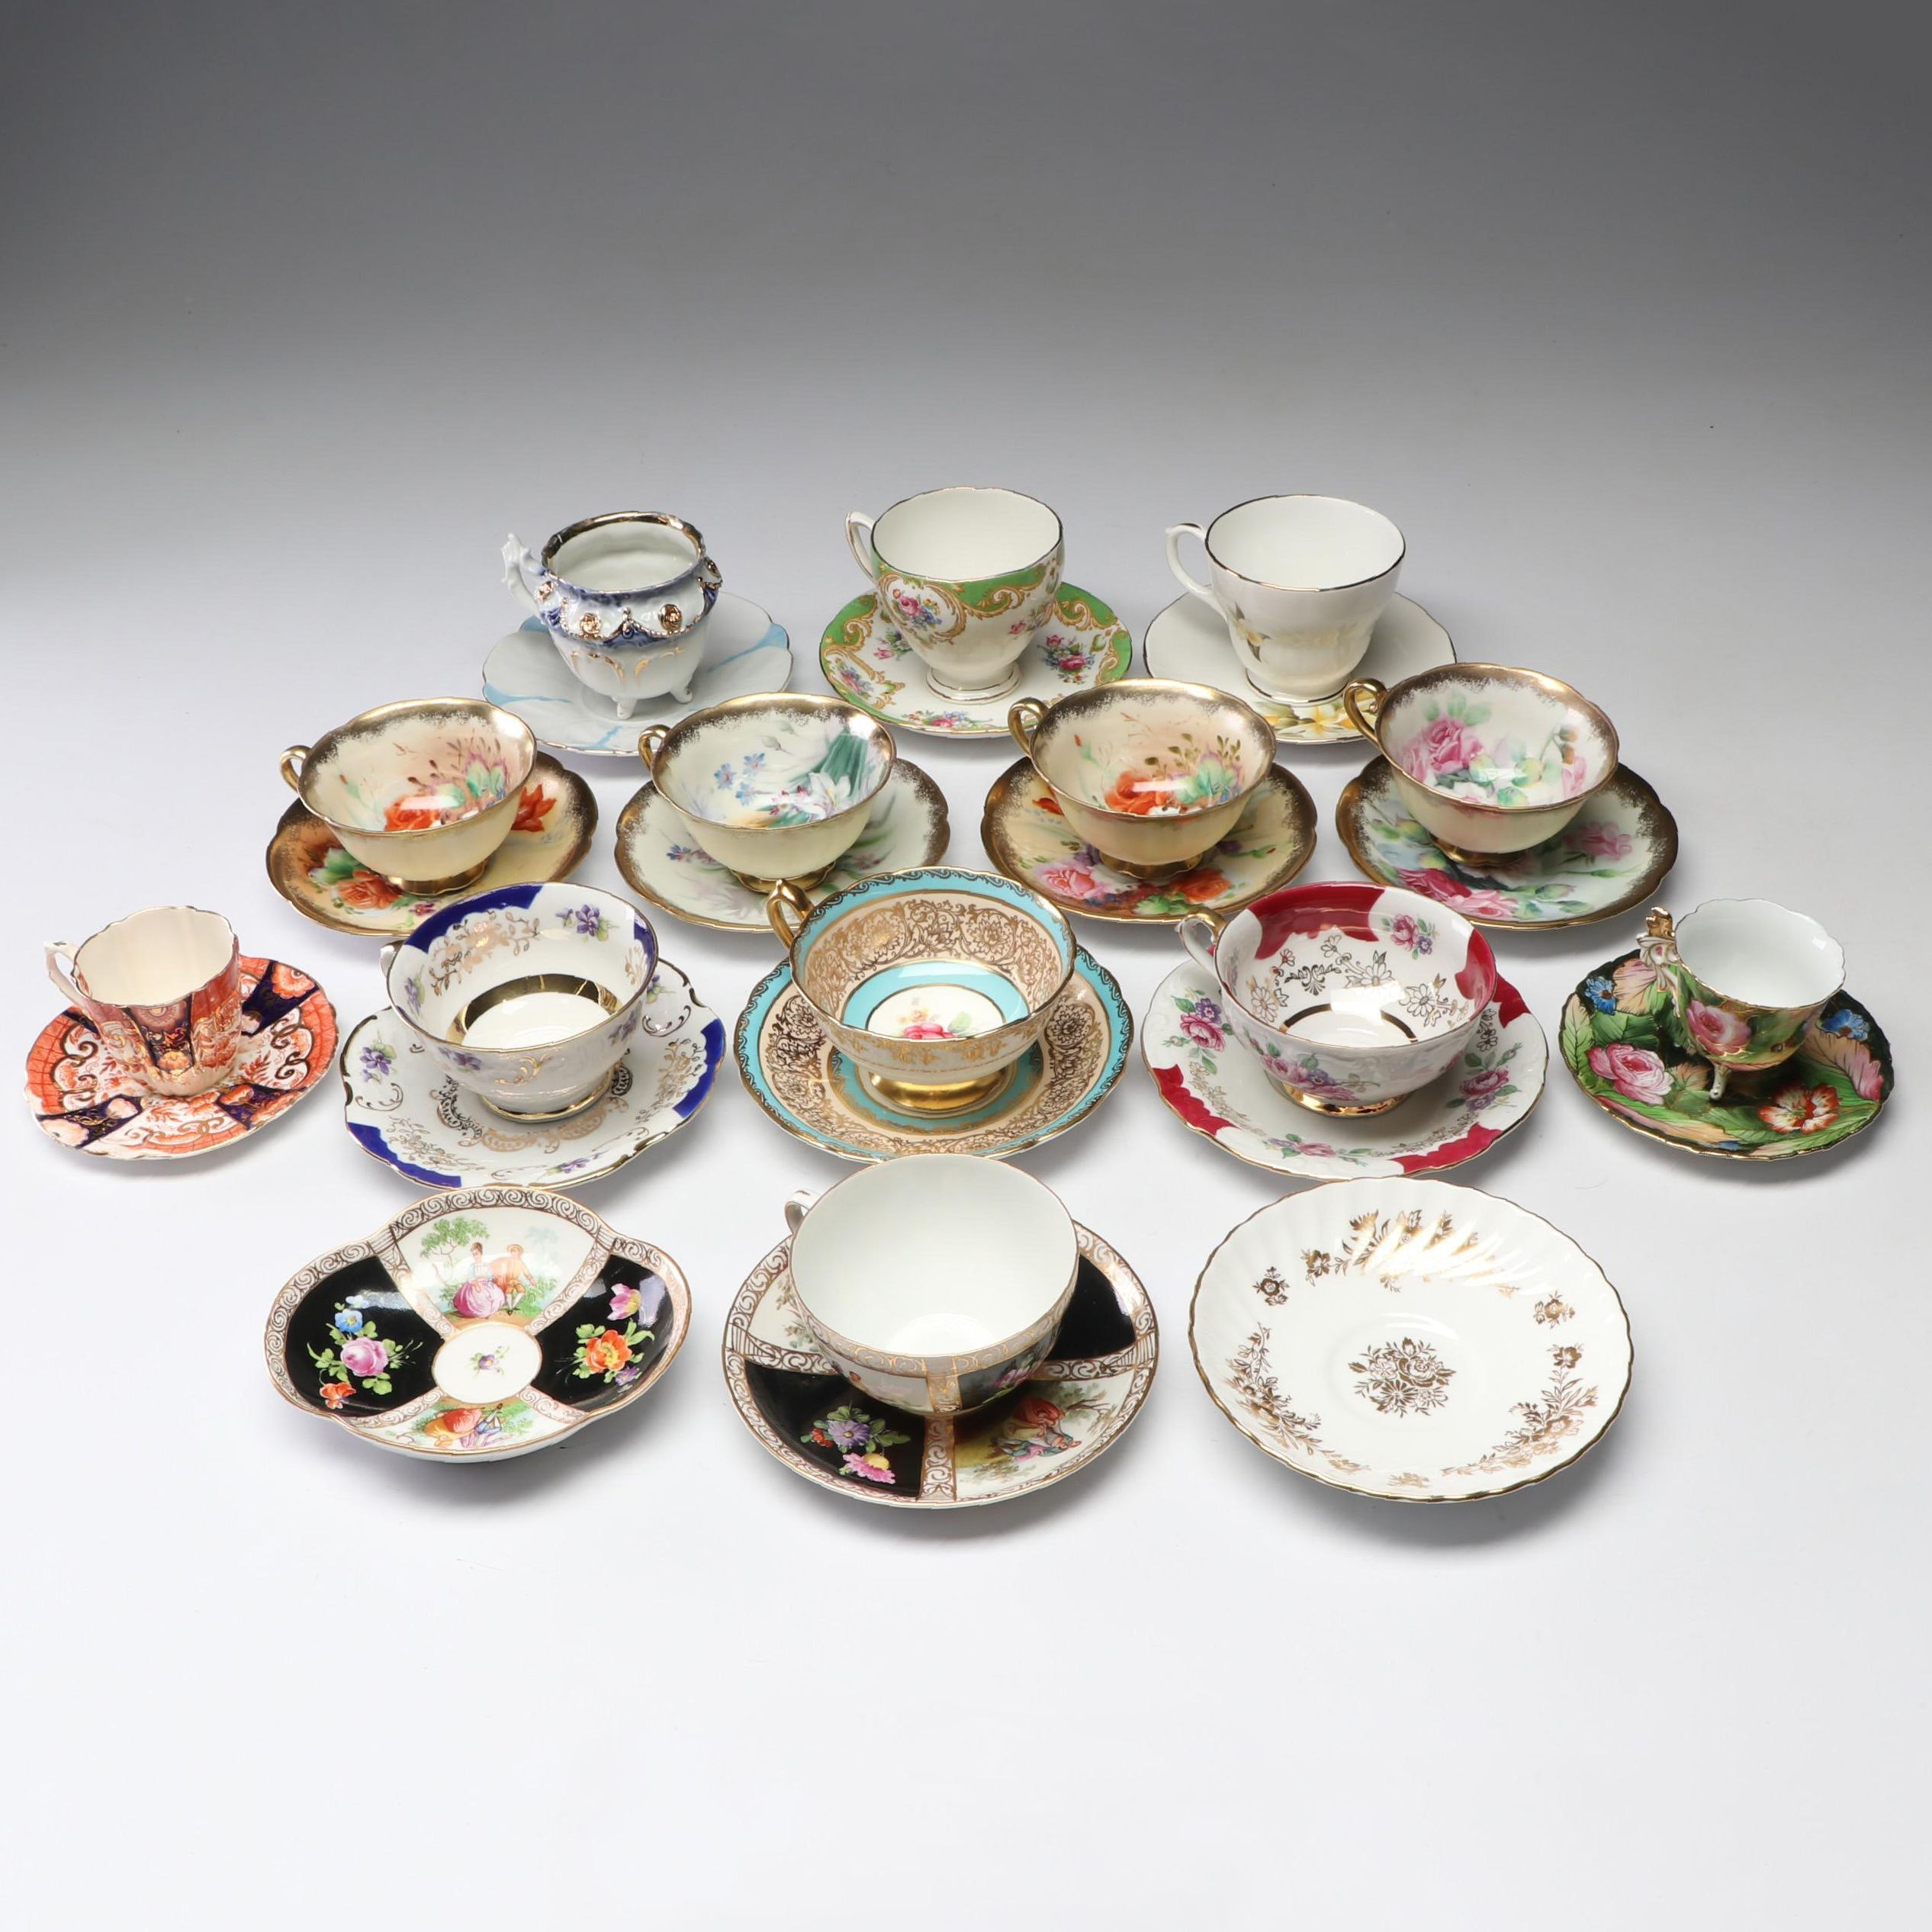 Collection of Porcelain and Bone China Tea Settings